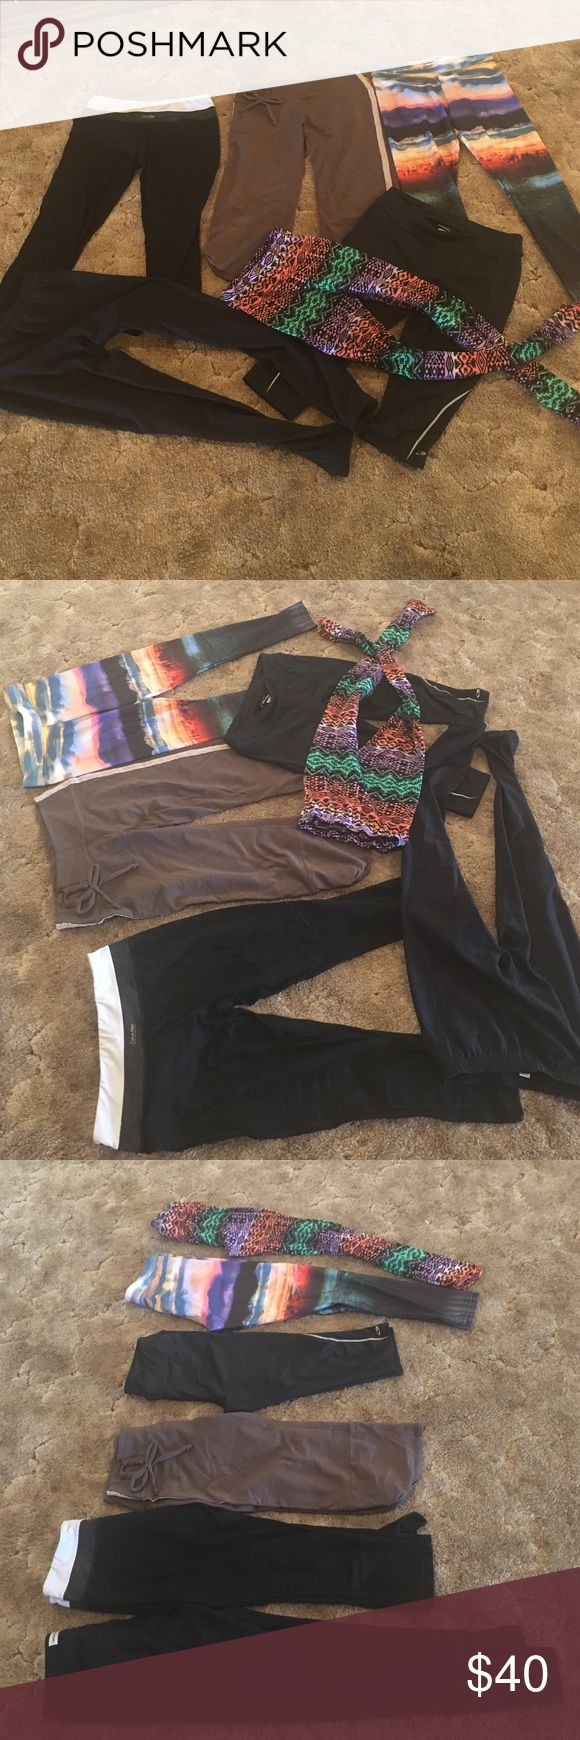 BUNDLE: 6 workout capris! American Eagle + more Price is for everything. I'd prefer to sell as a package to clear closet space. From L to R: black Under Armour pants - sz M, very slight pilling on inner thigh. Black/white Calvin Klein capris - sz S, perfect condition. Brown Homme Body - sz S, great condition. Black champion capris - sz S, great condition. American Eagle sunset pants - sz M, great condition, very pretty. Patterned leggings - sz S/M, great condition. Despite some being small…